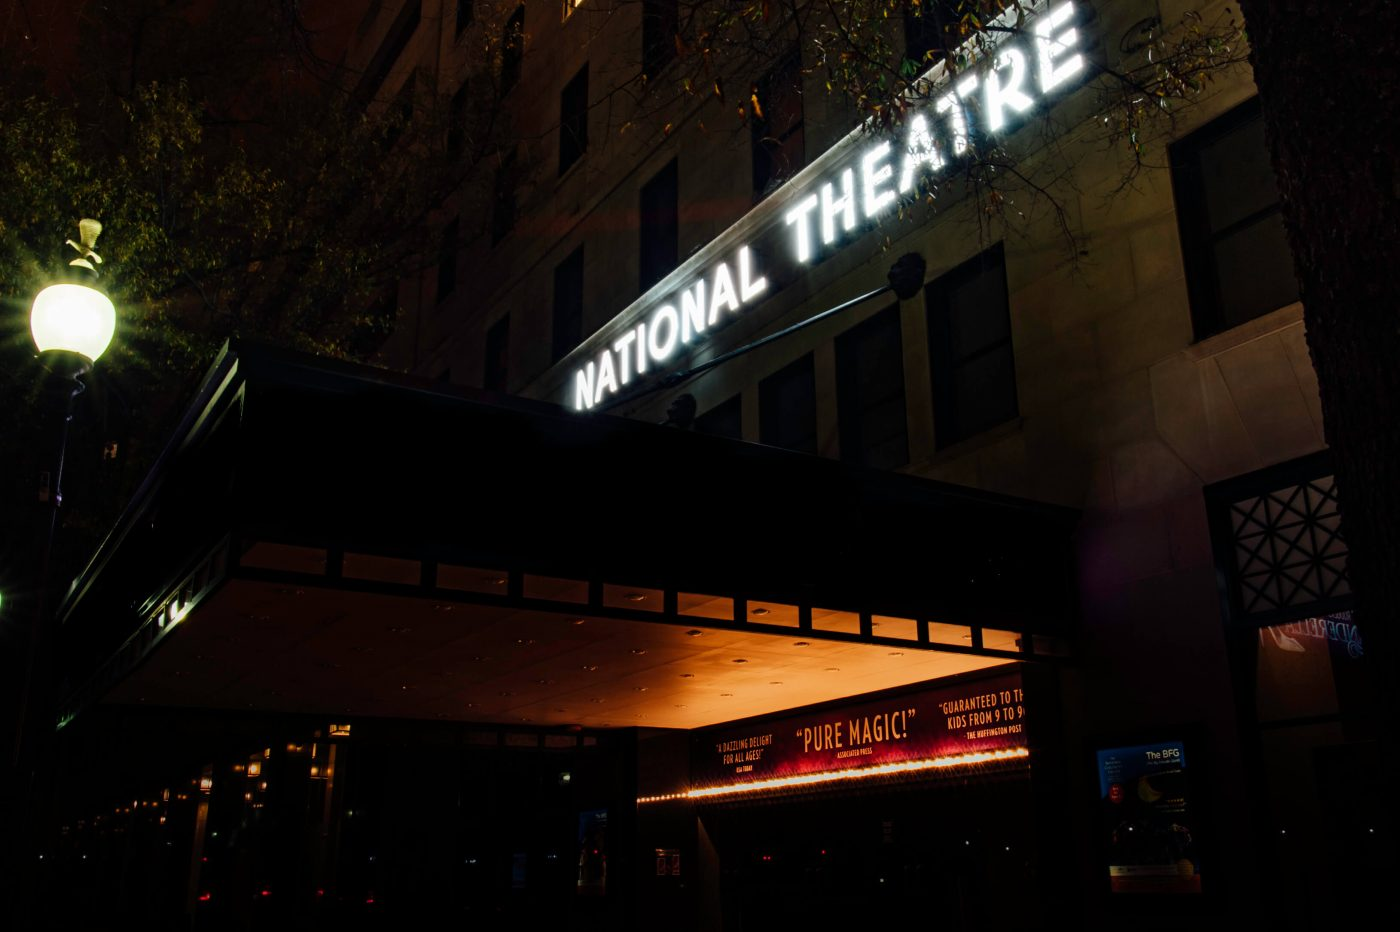 The National Theatre - Photo